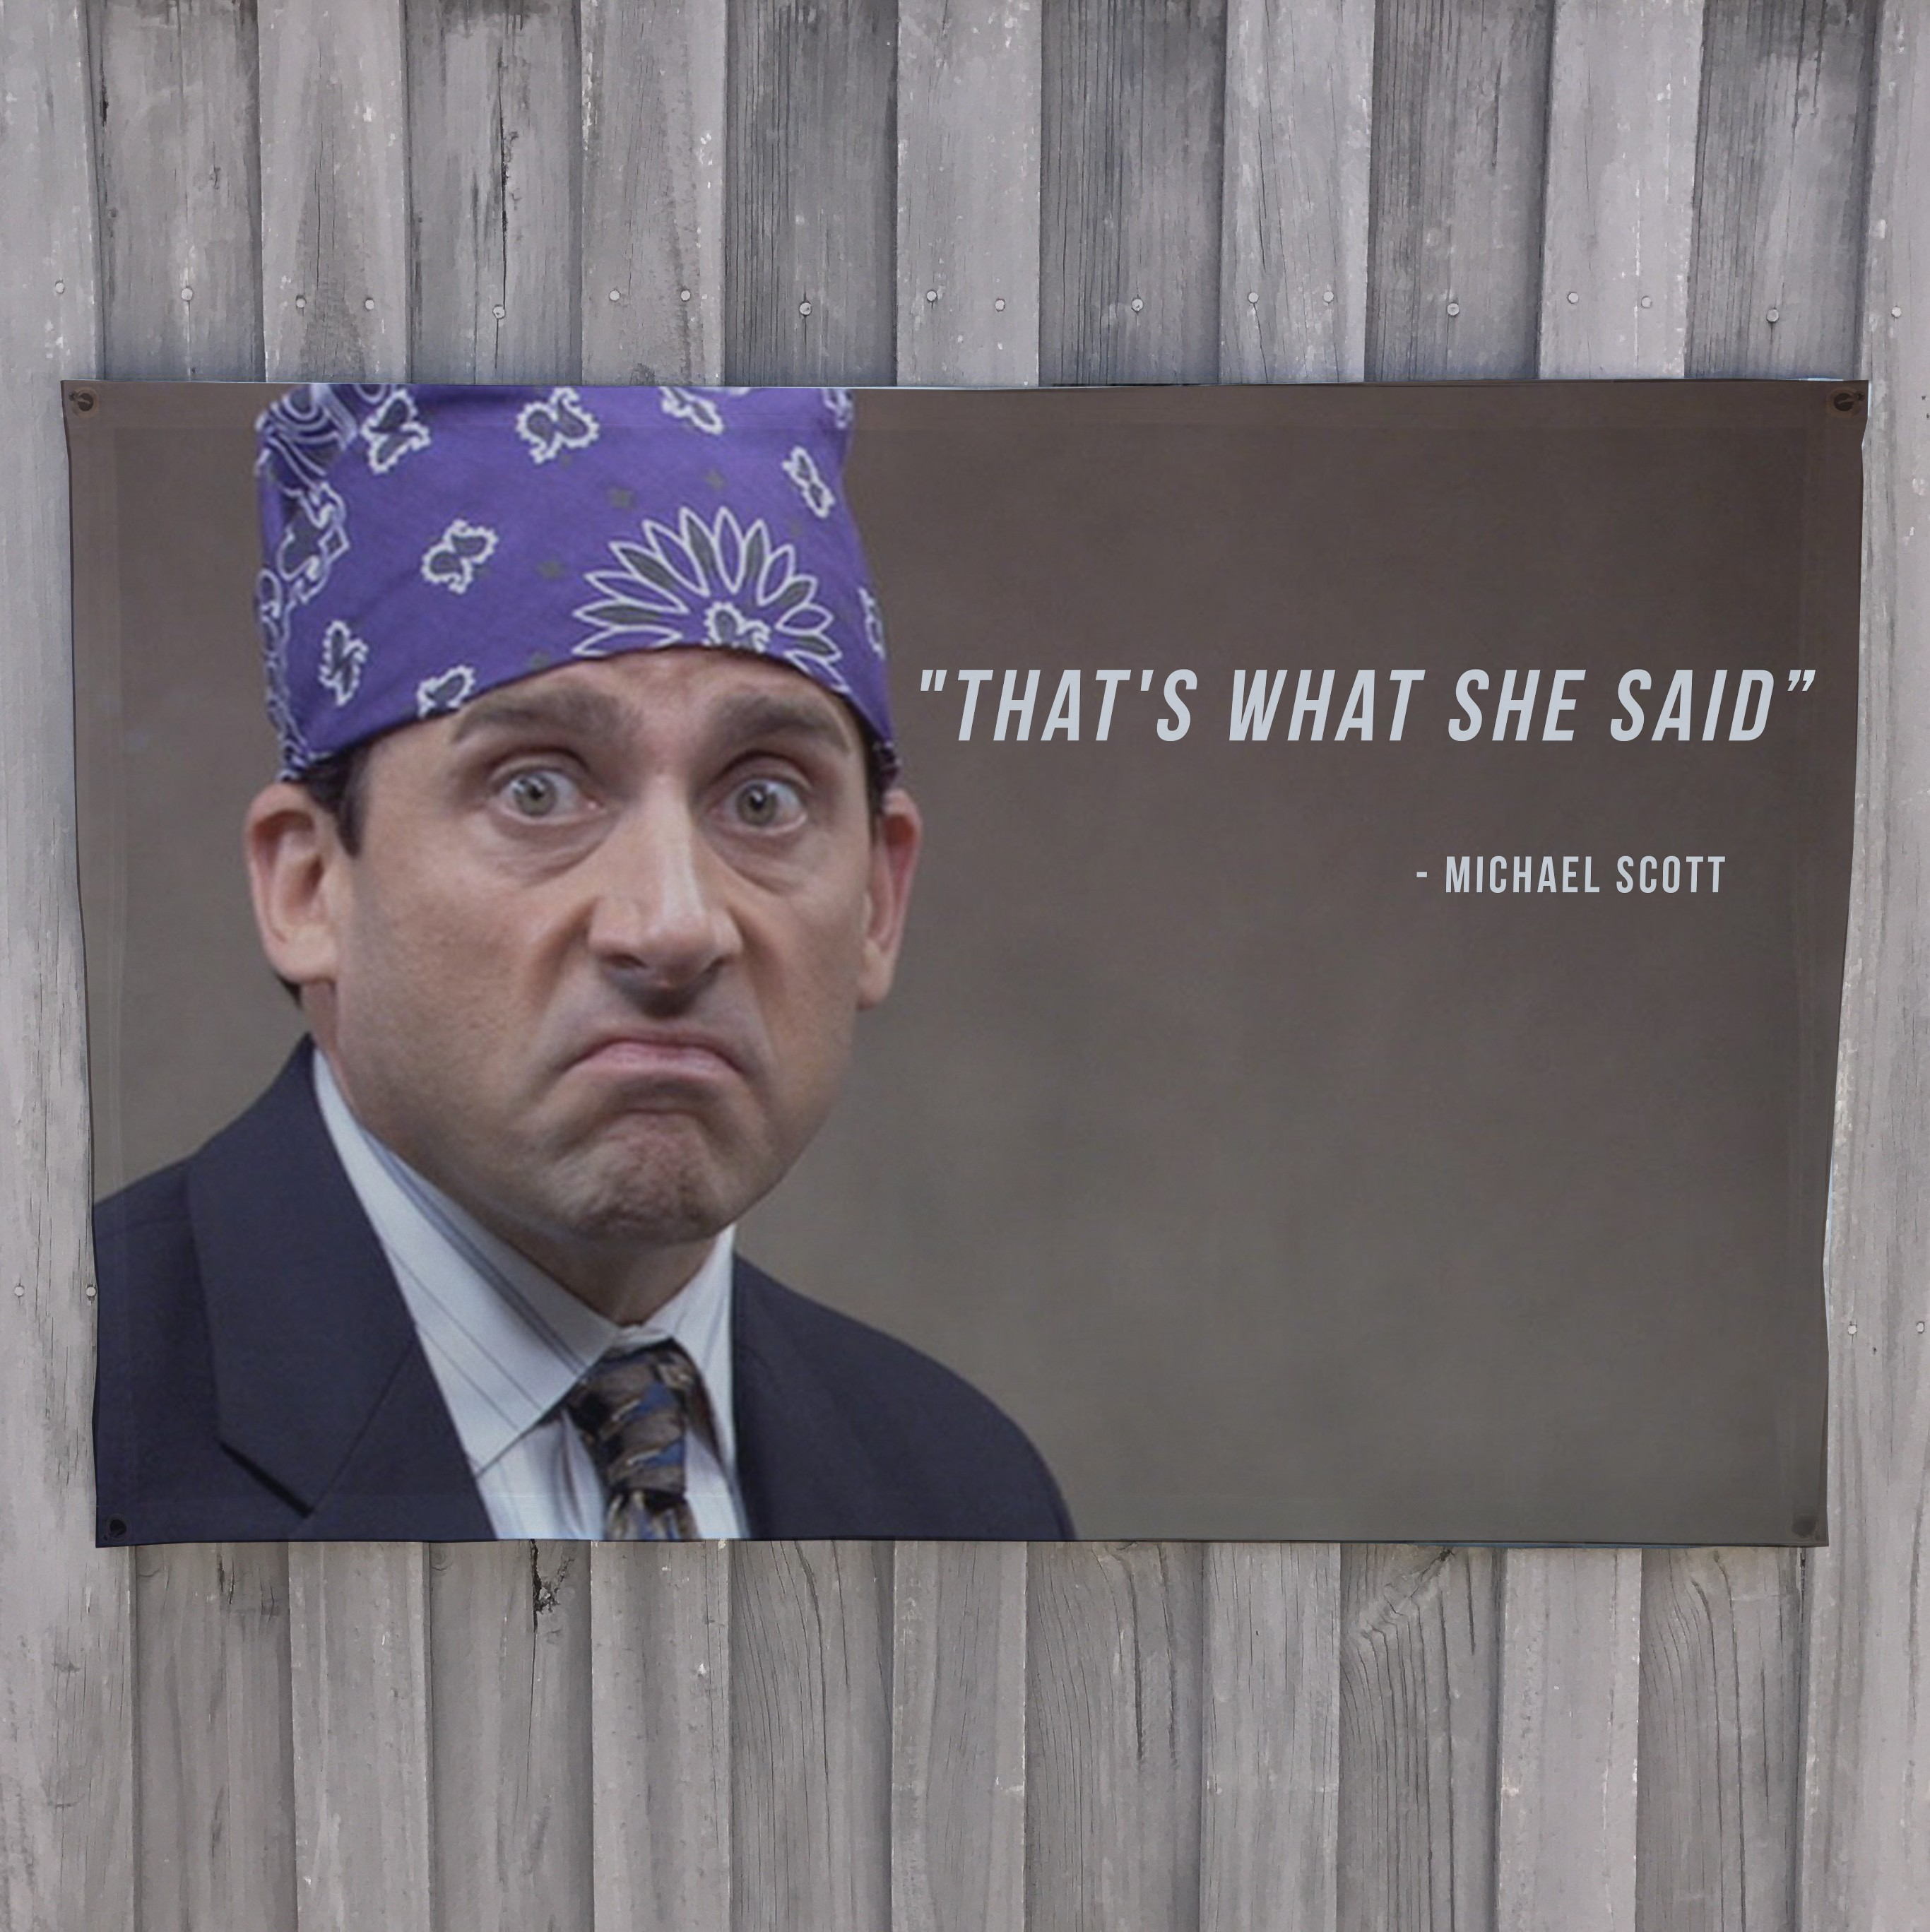 WHAT SHE SAID WALL HANGING 1200 X 800MM